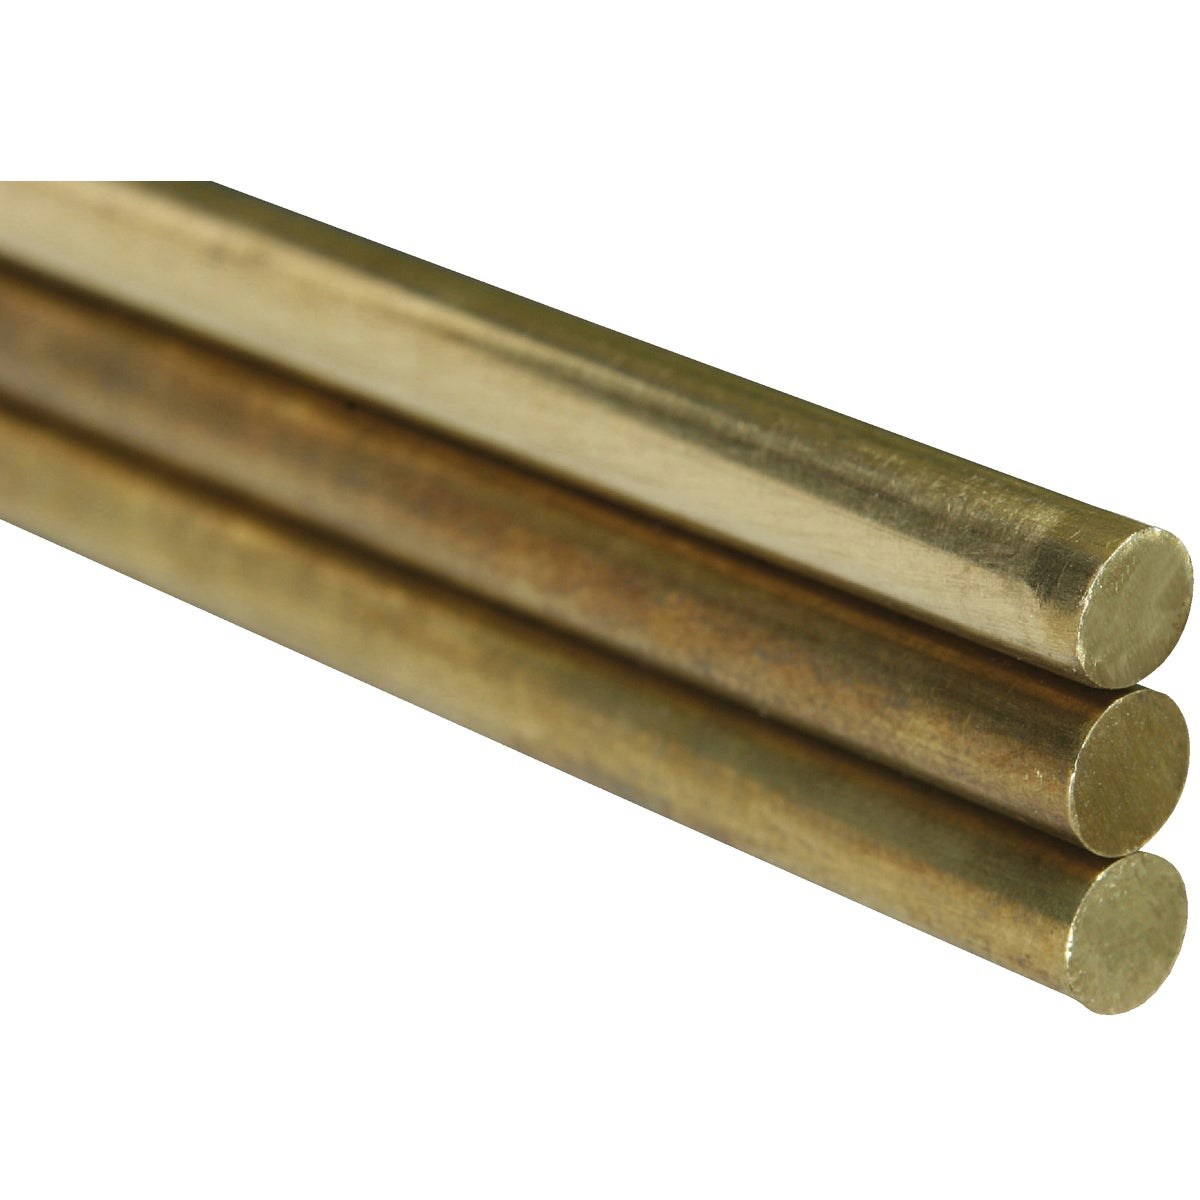 3/16X12 SOLID BRASS ROD - 8166 by K&s Precision Metals